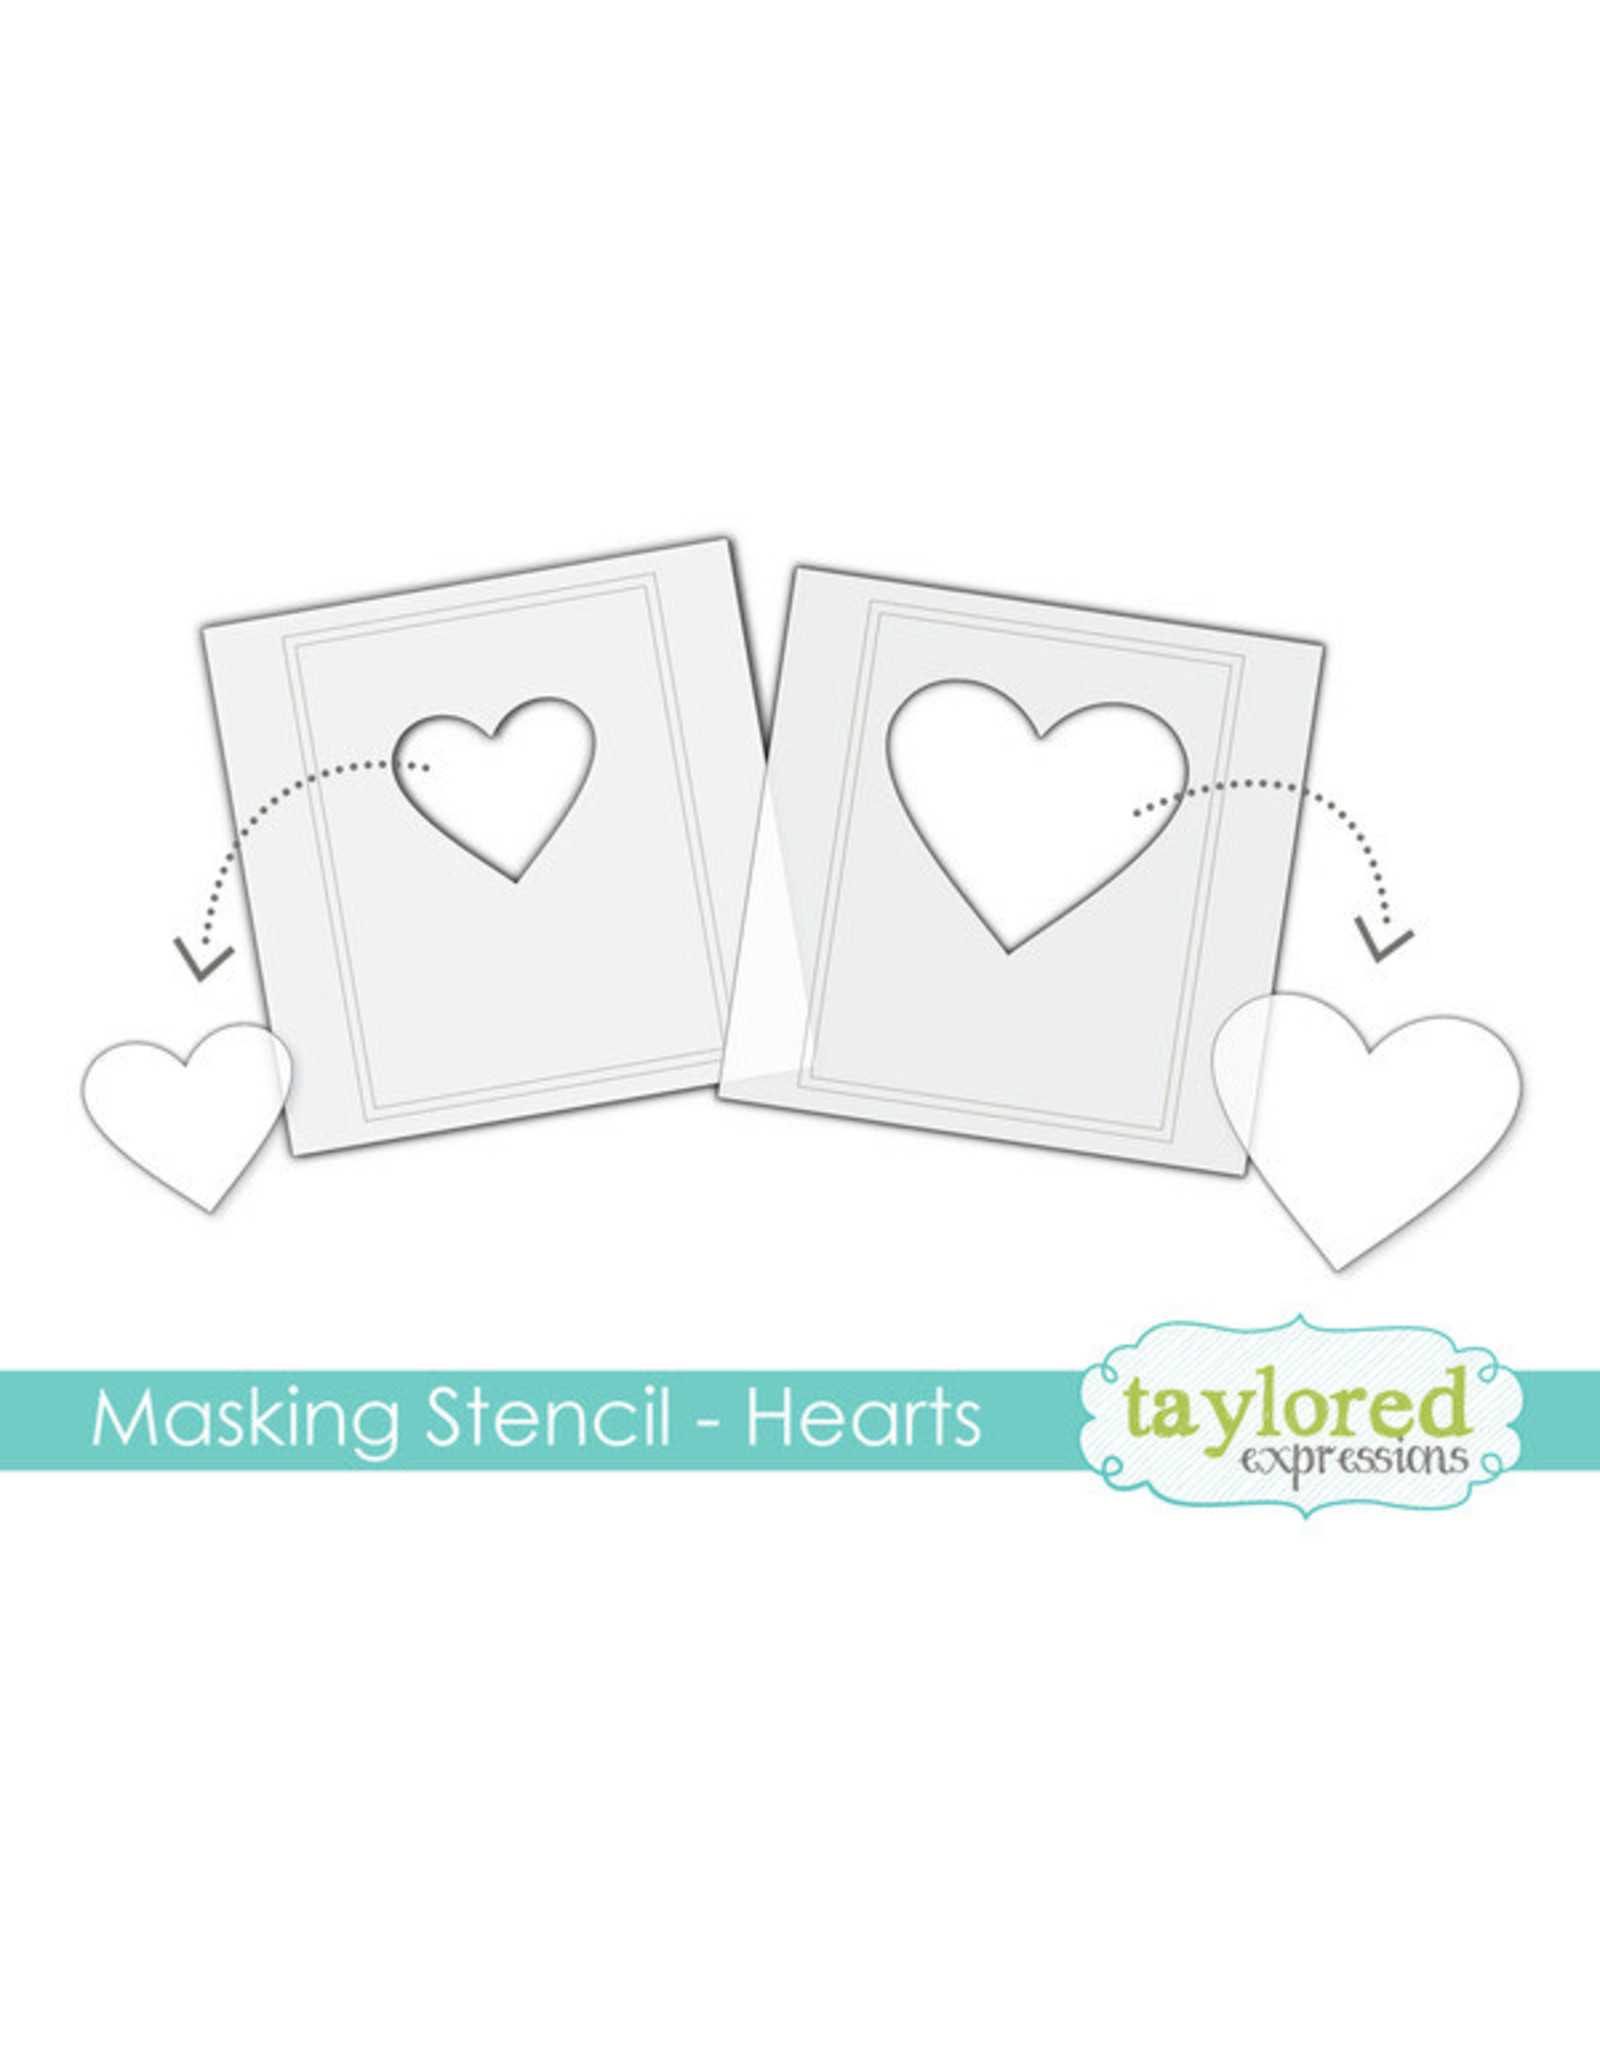 Taylored Expressions Hearts - 6x6 Designer Masking Stencil